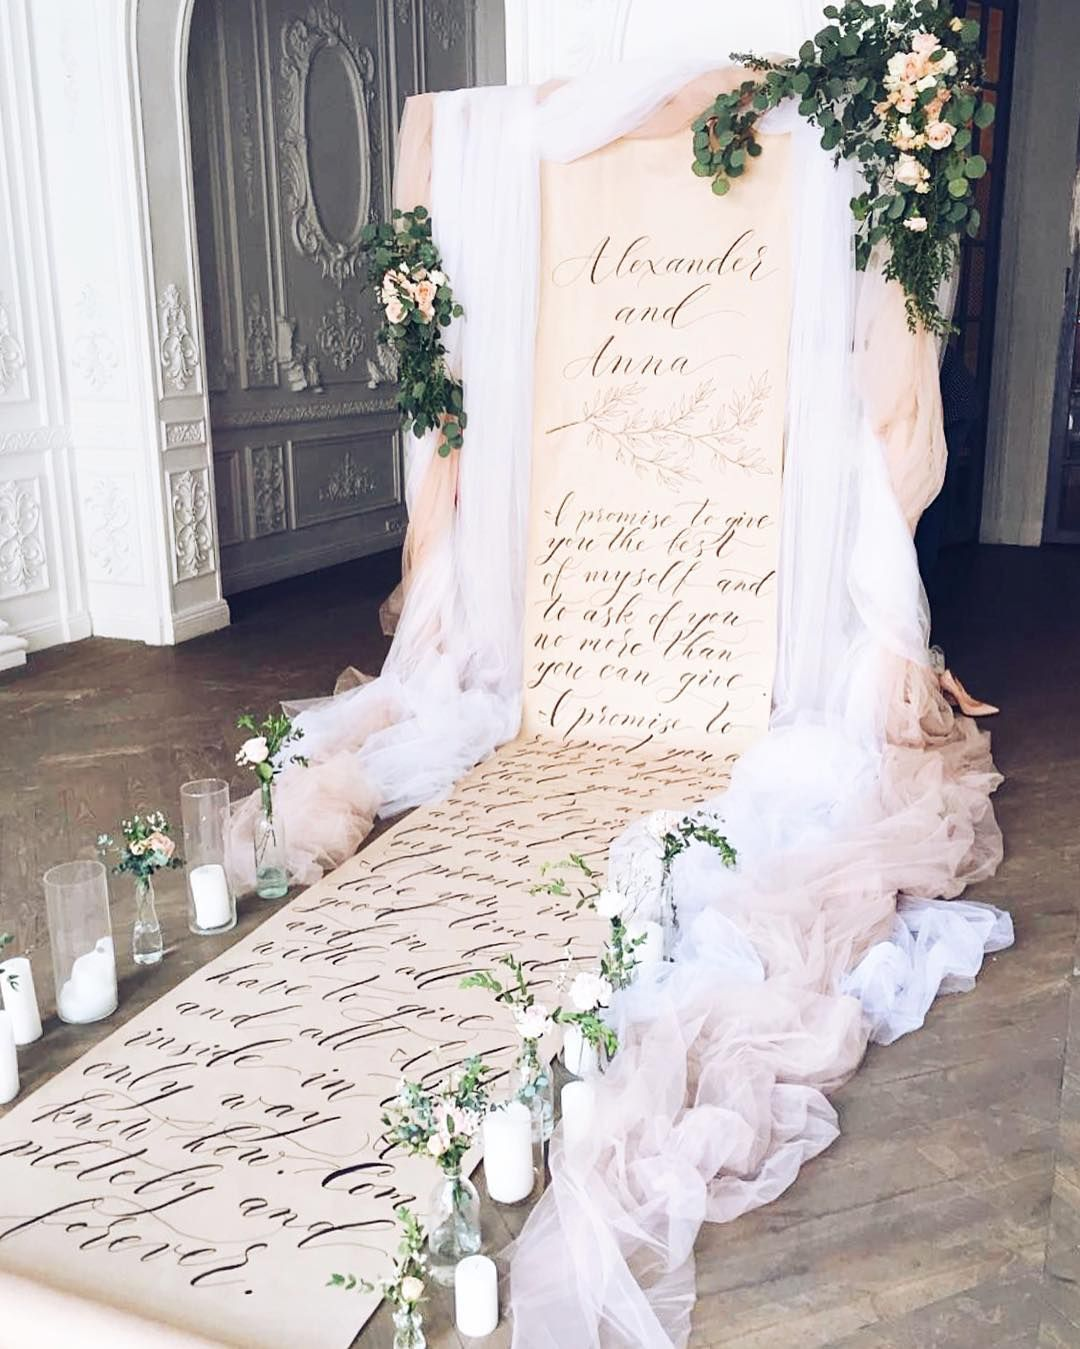 Diy Altar Decorations For Wedding: Pin By Jeni Baca On Wedding Cocktail Hour